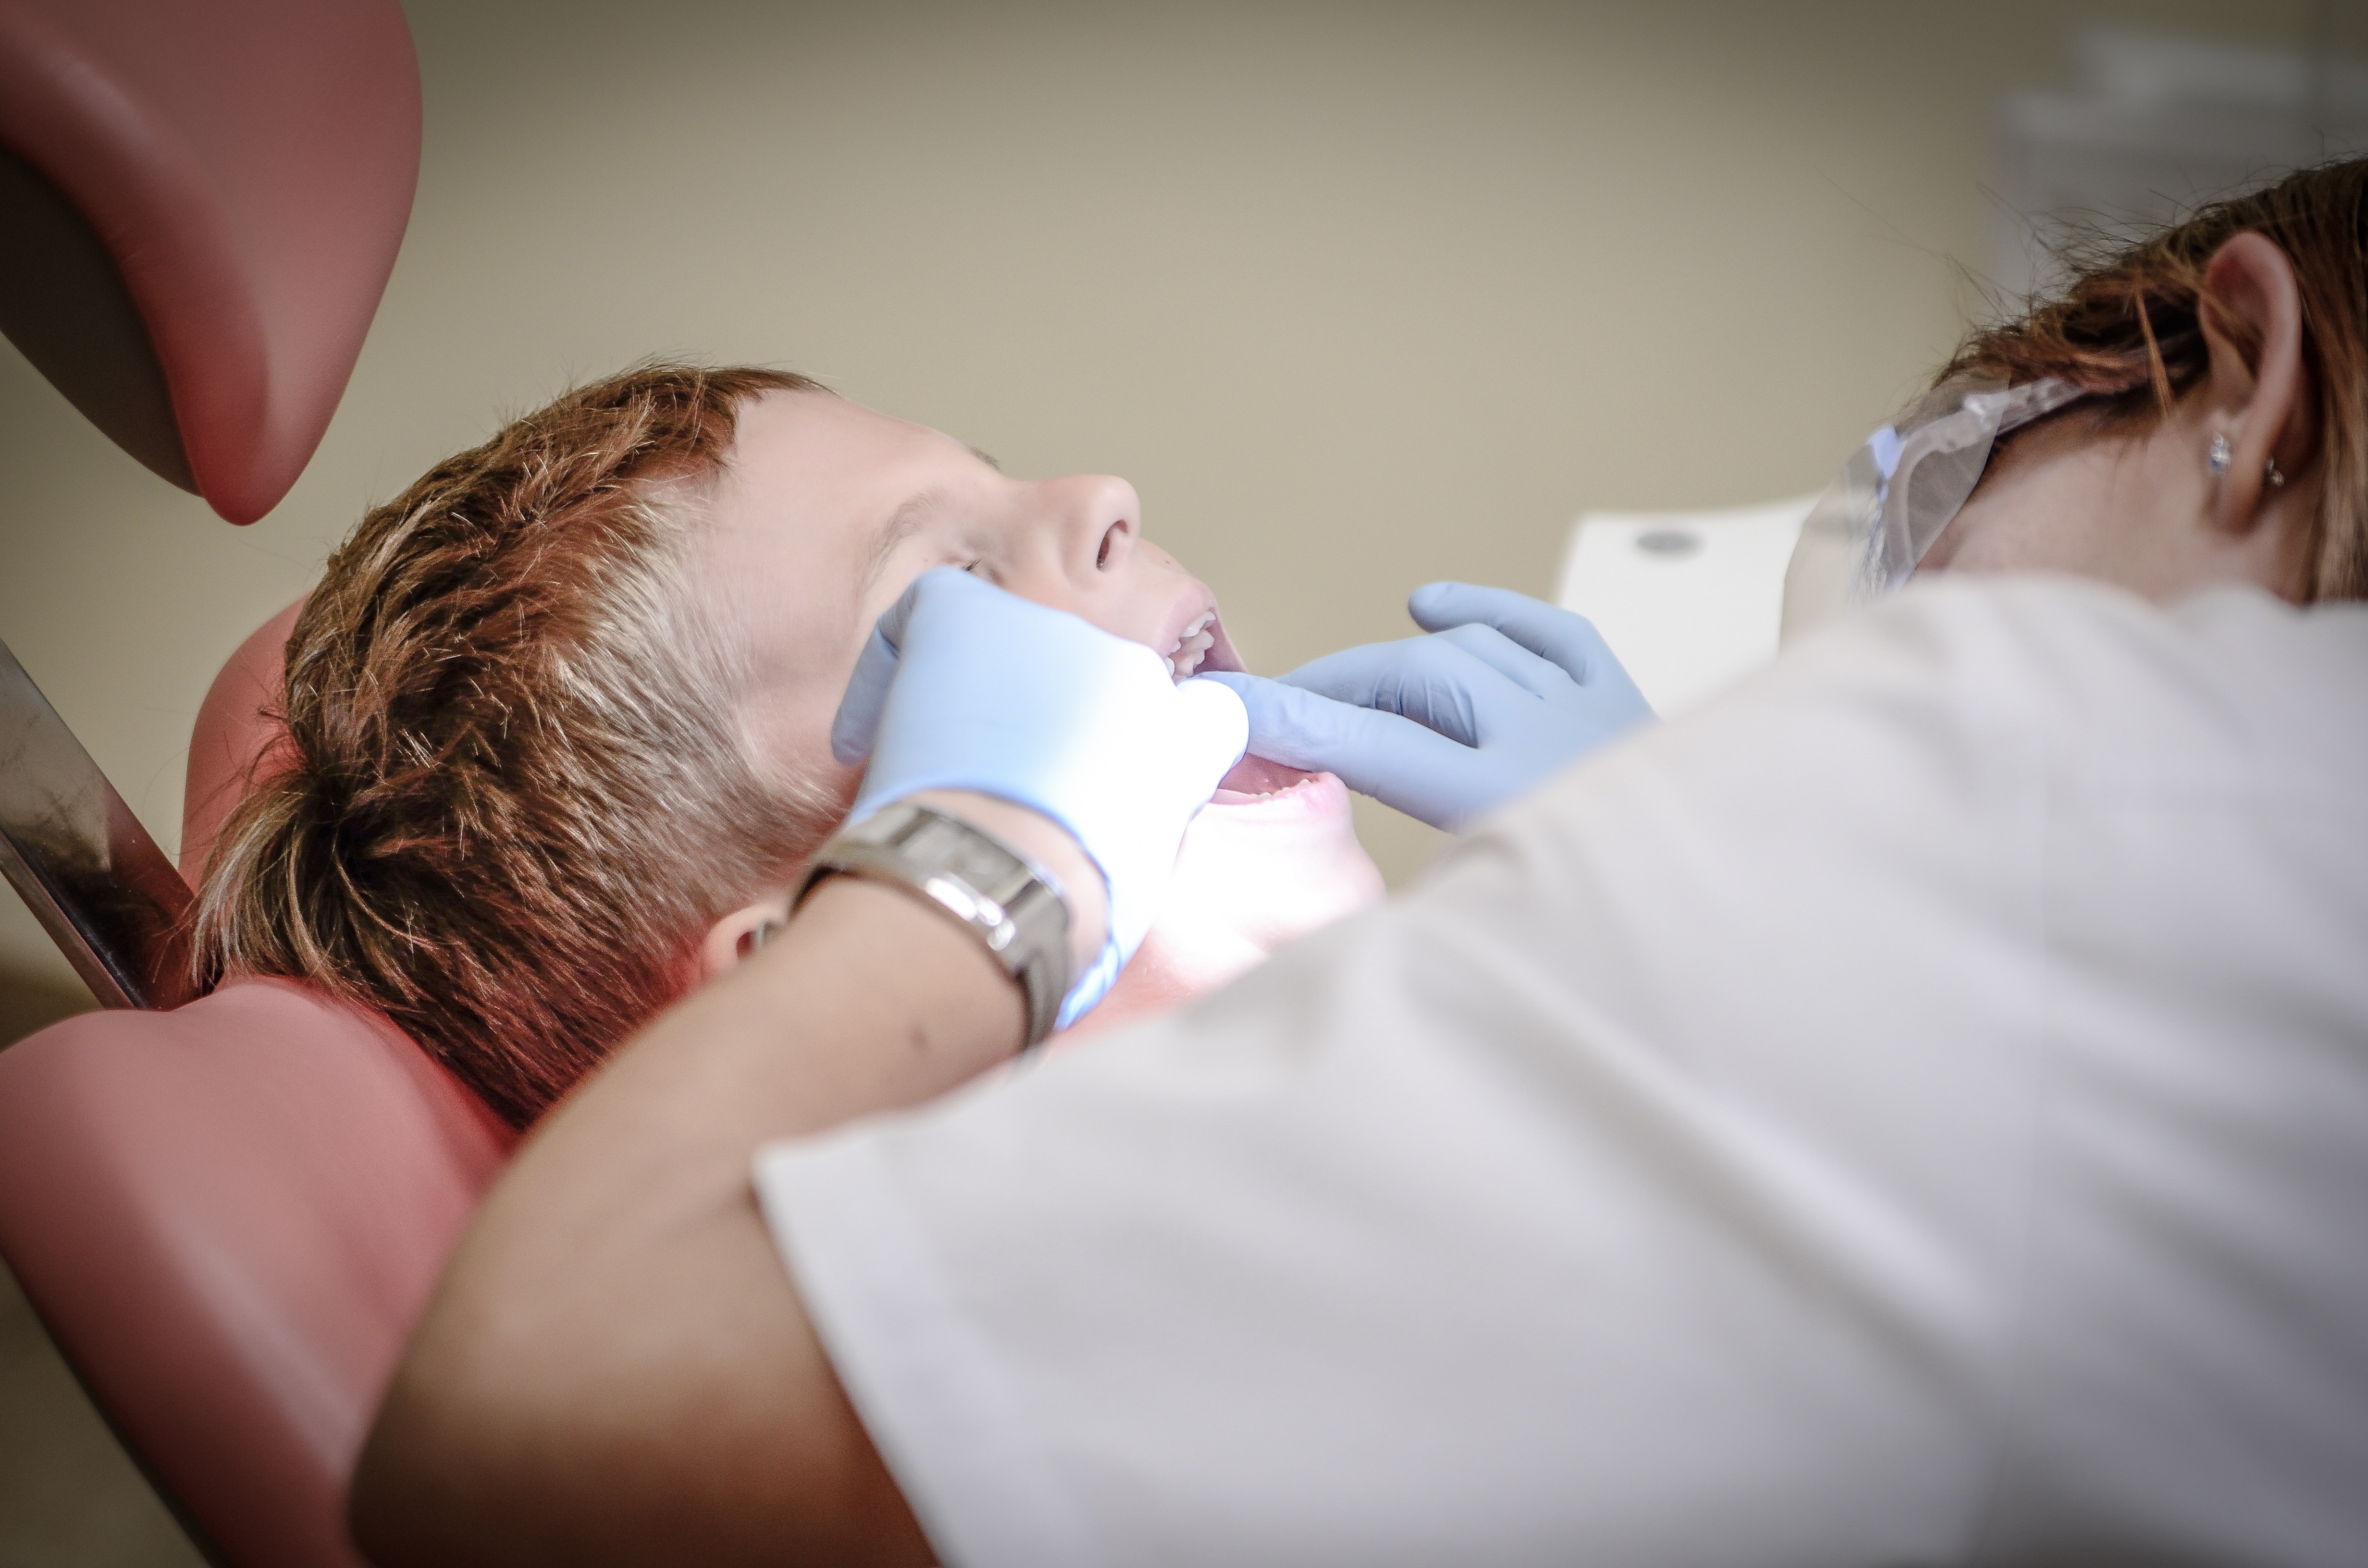 At What Age Should My Children Not go to a Paediatric Dentist?